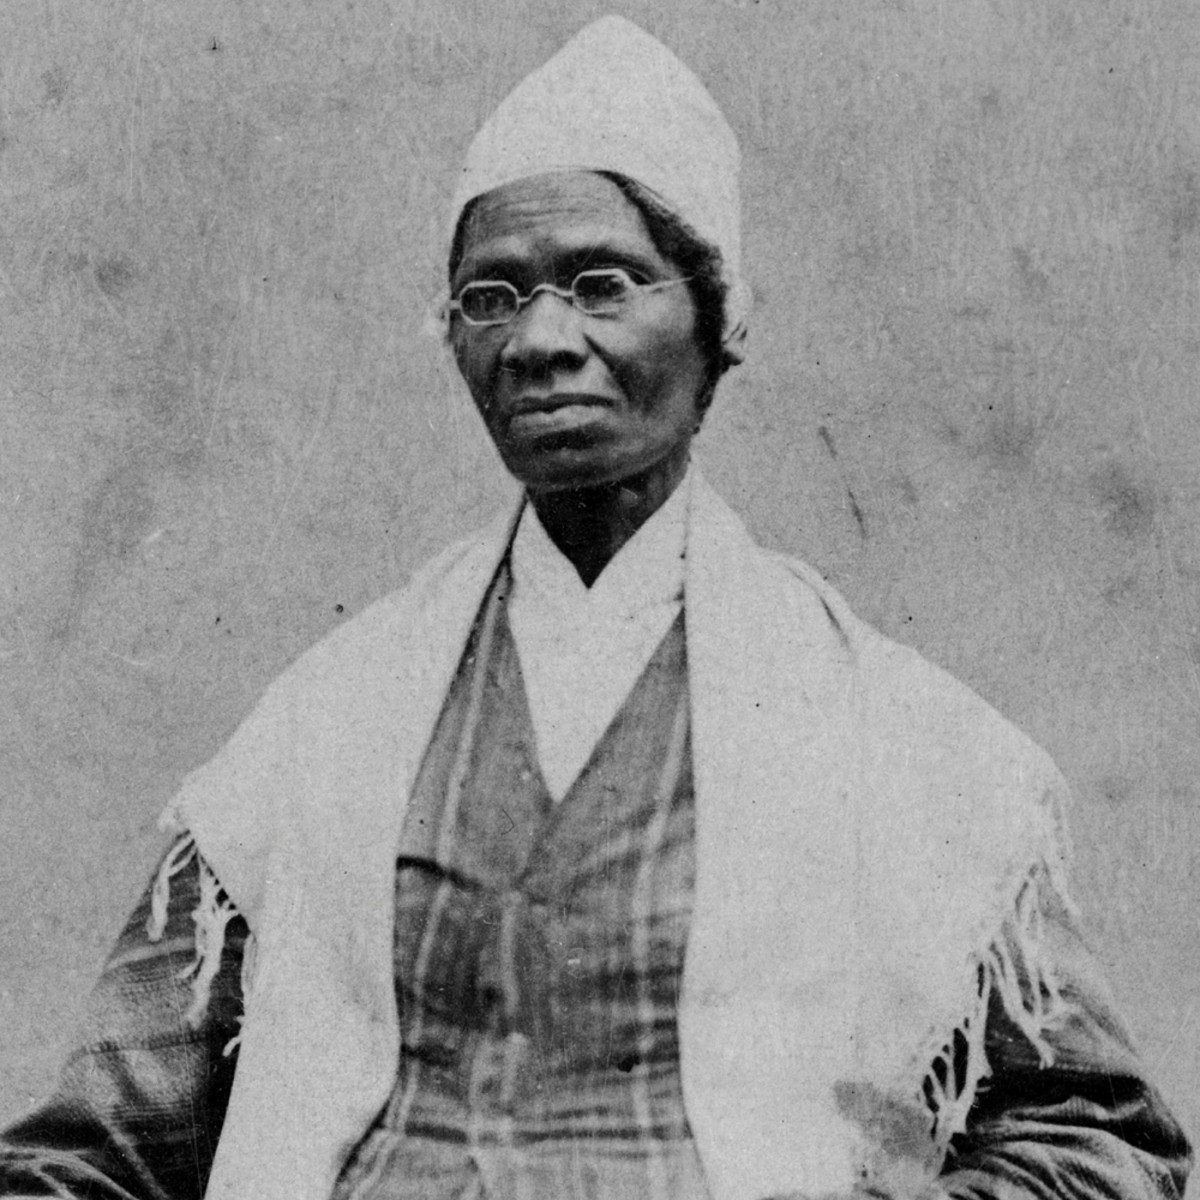 Sojourner Truth was an escaped slave who proved the might of both women and black Americans